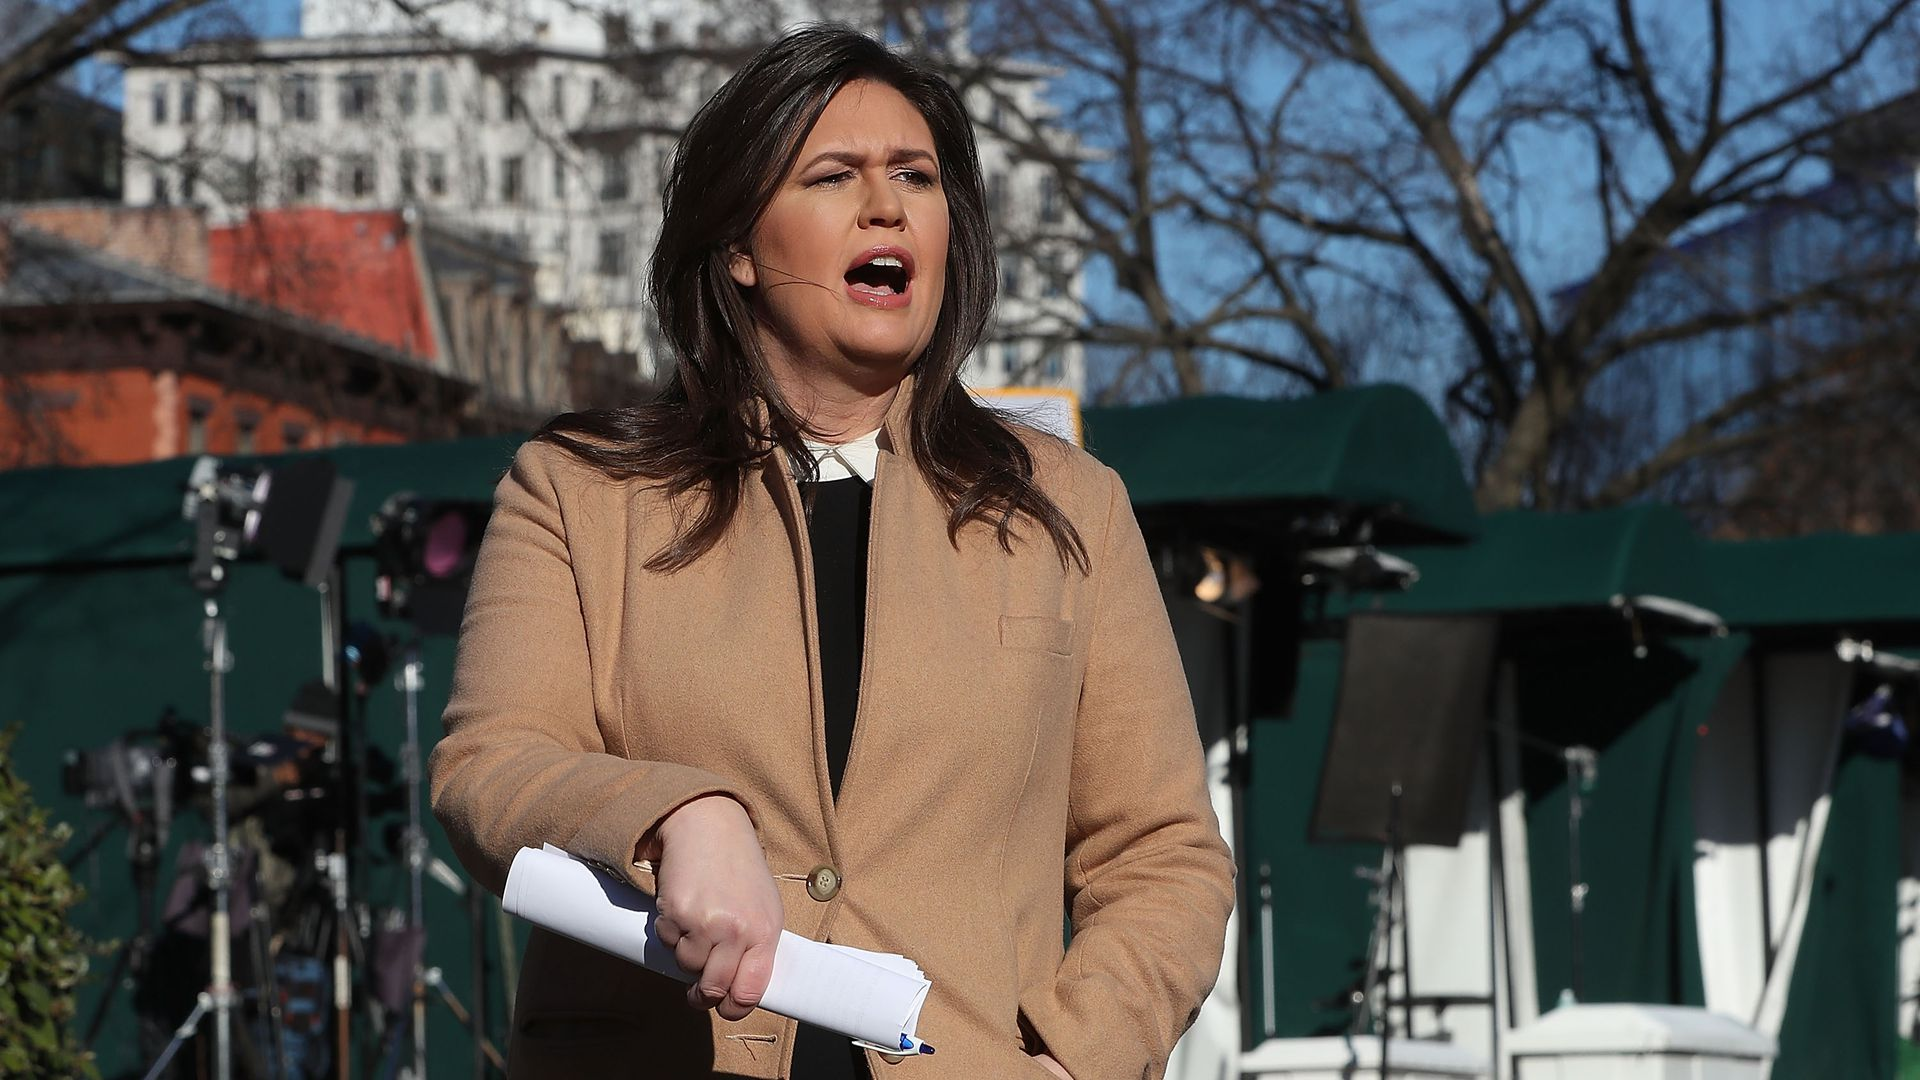 Sarah Sanders talking to reporters with a beige coat on.